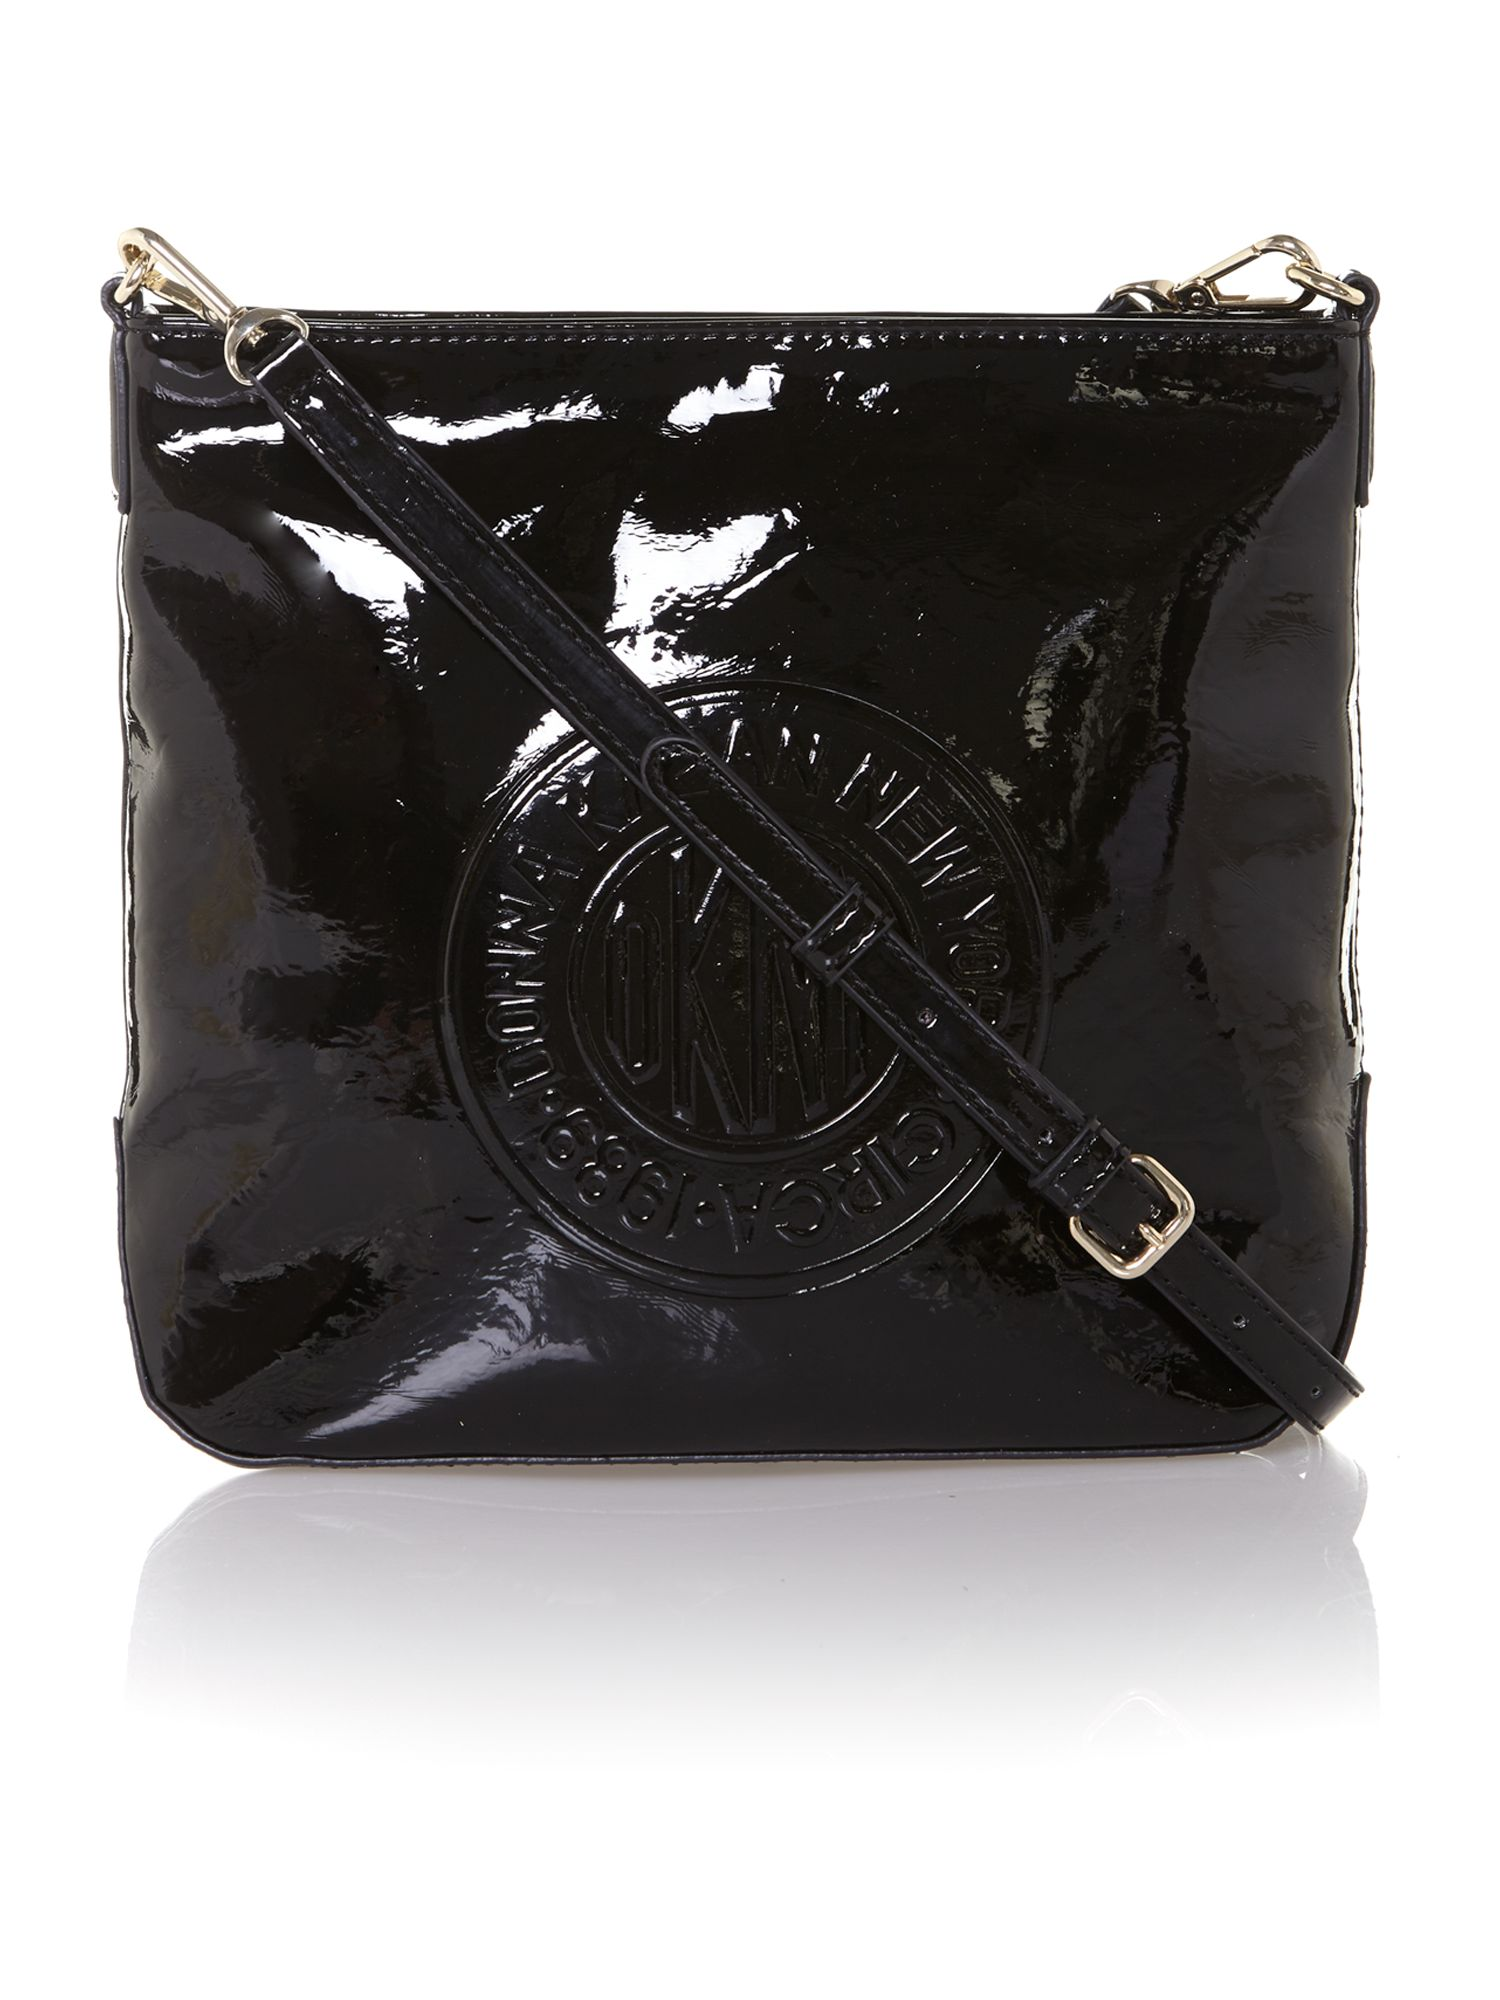 Patent coin logo small black cross body bag